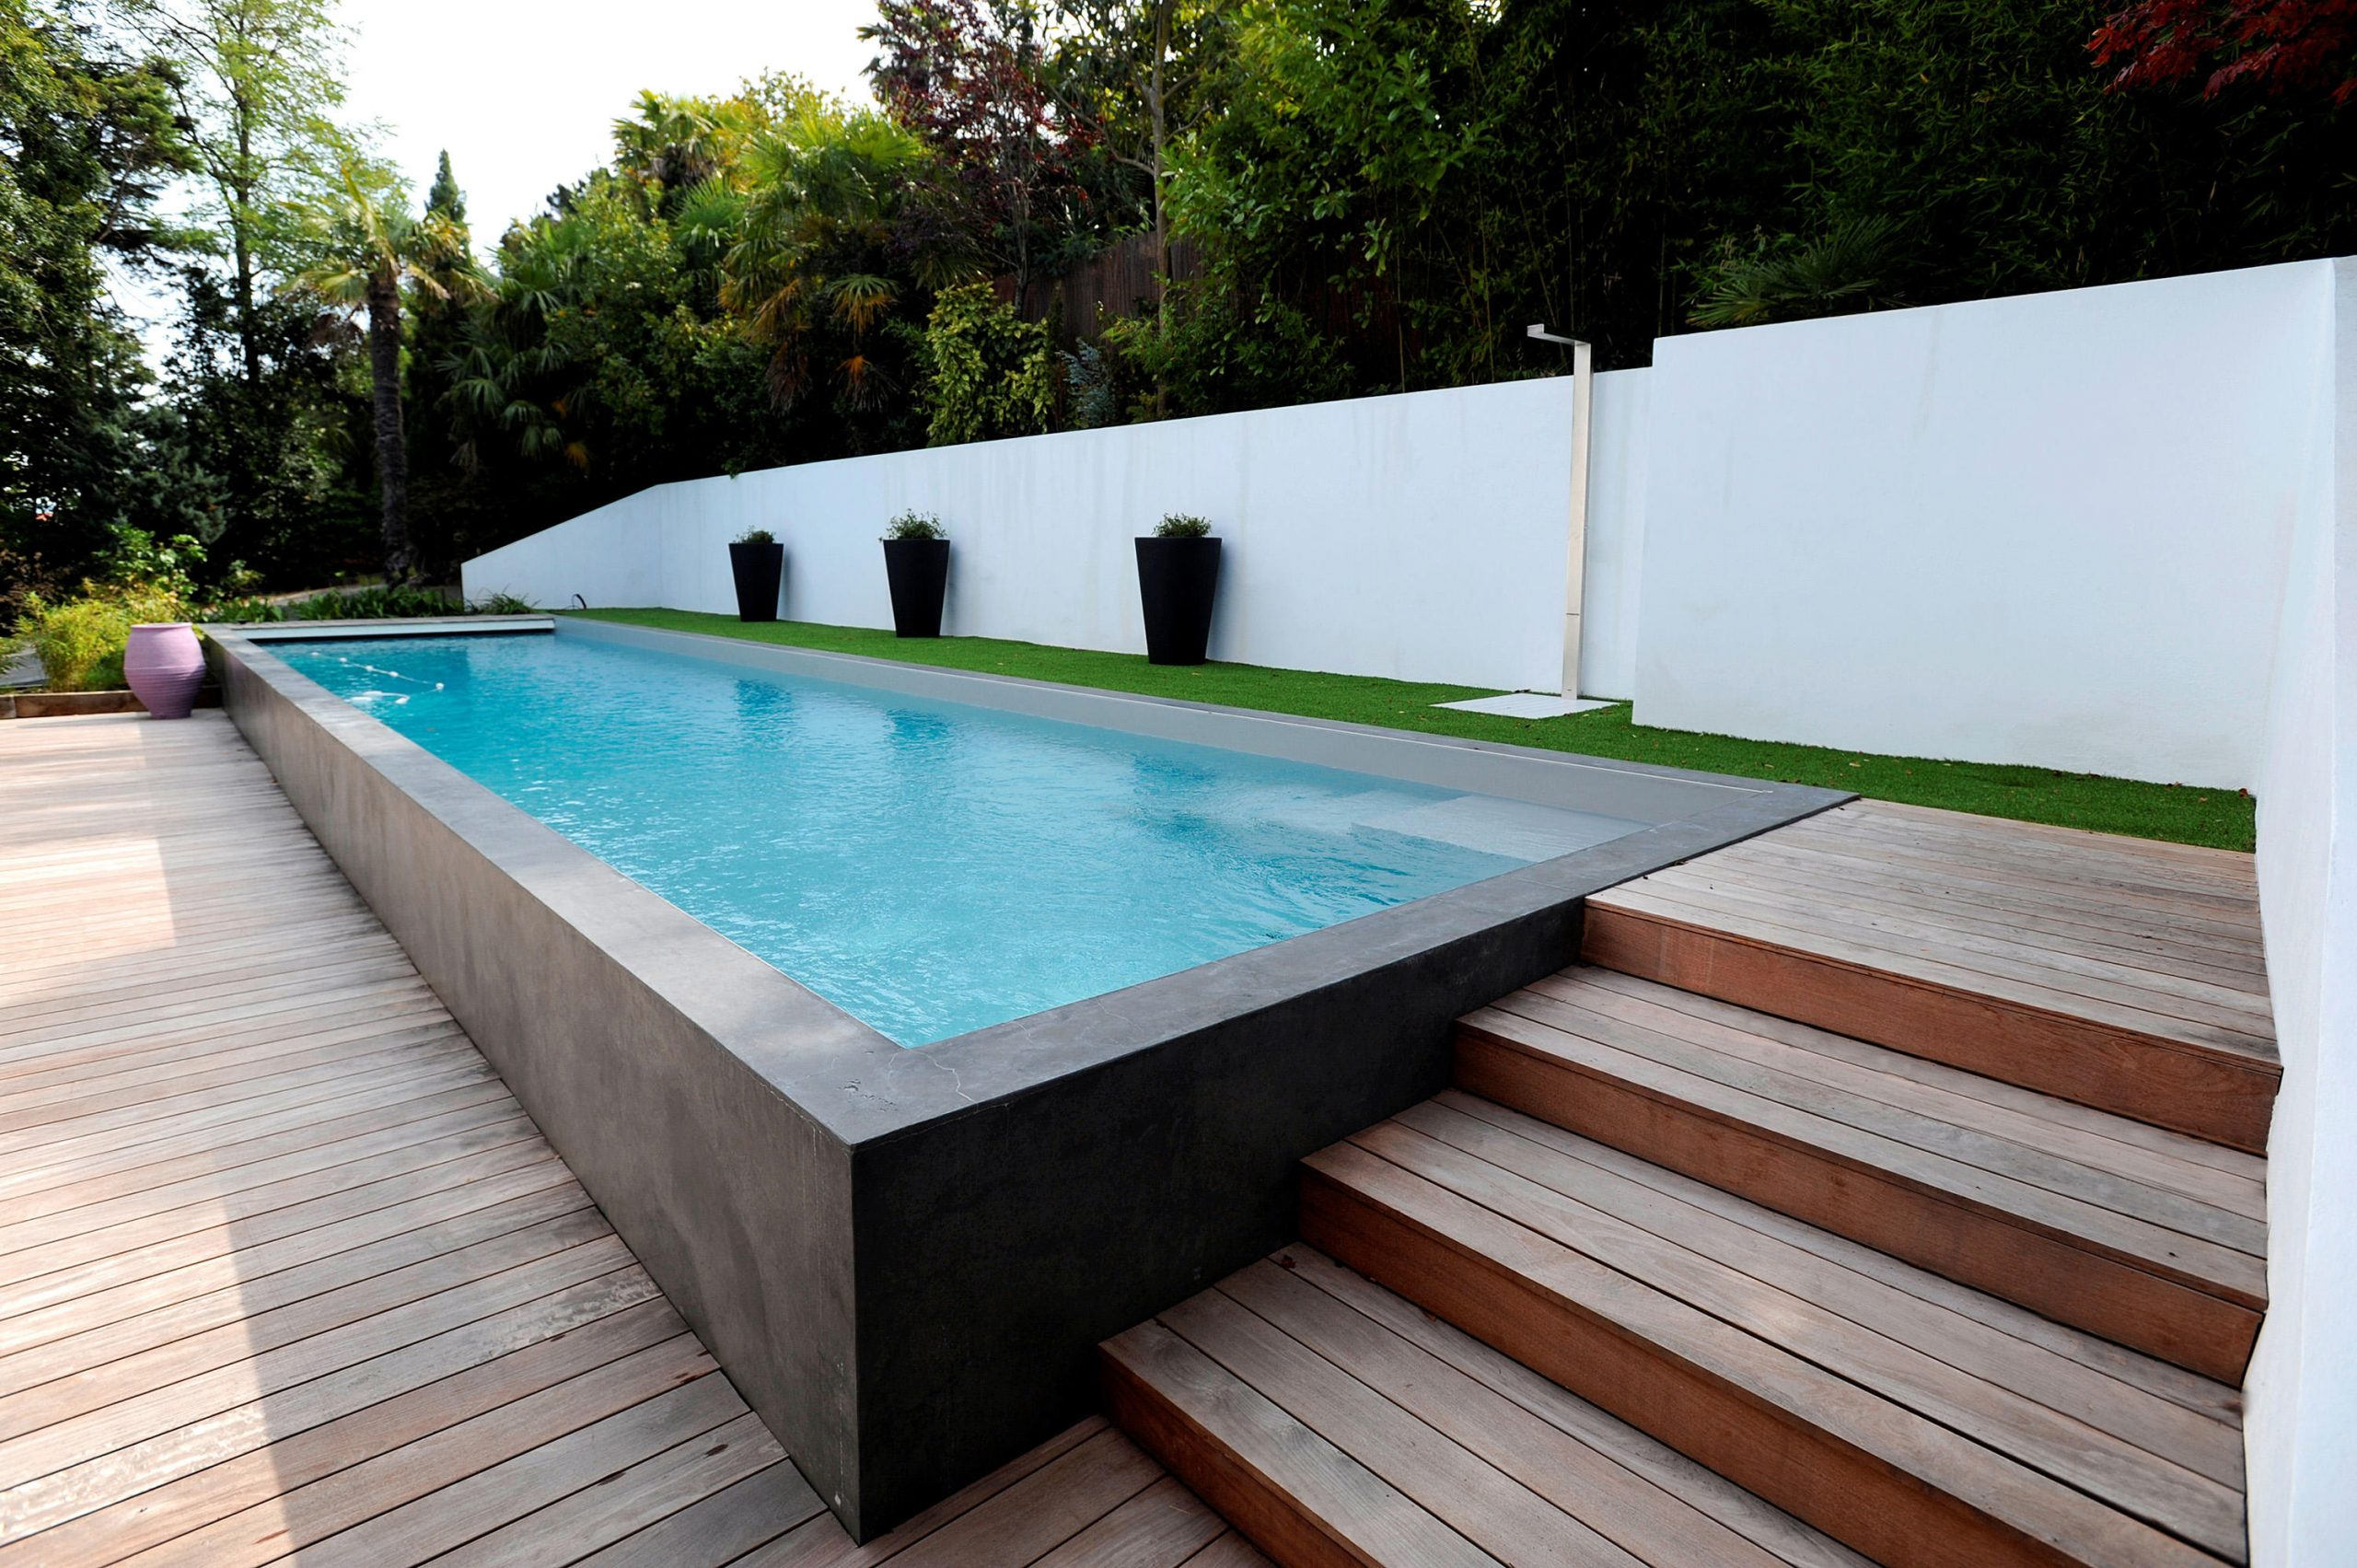 Half Burried Pool & Designer Furniture | Architonic avec Piscine Semi Enterrée Beton